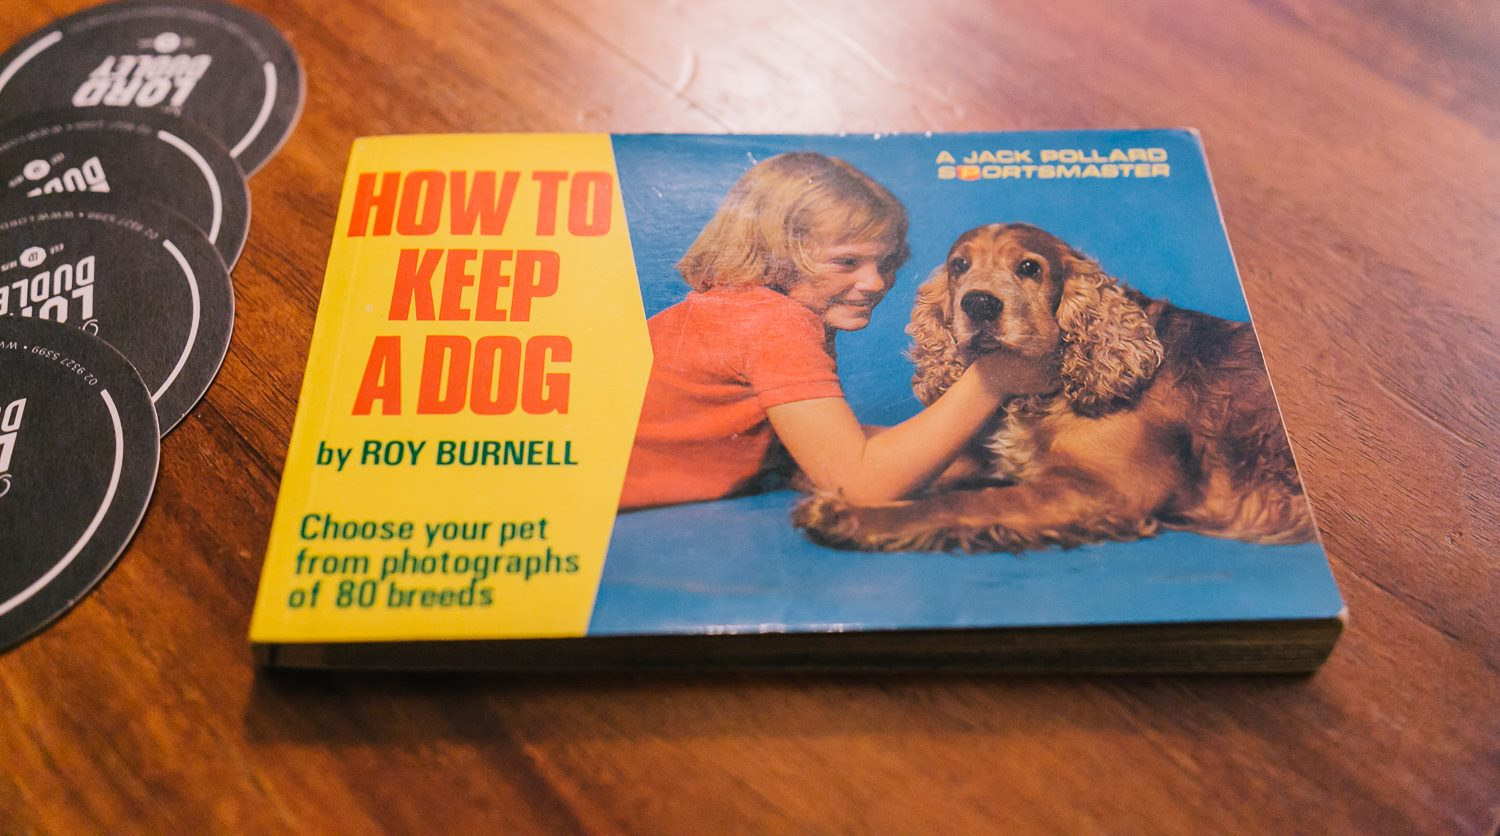 Lou's first foray into fame, on the cover of 'How to Keep a Dog', written by her father. A great story accompanied this book, shared at our Mama Creatives evening talk